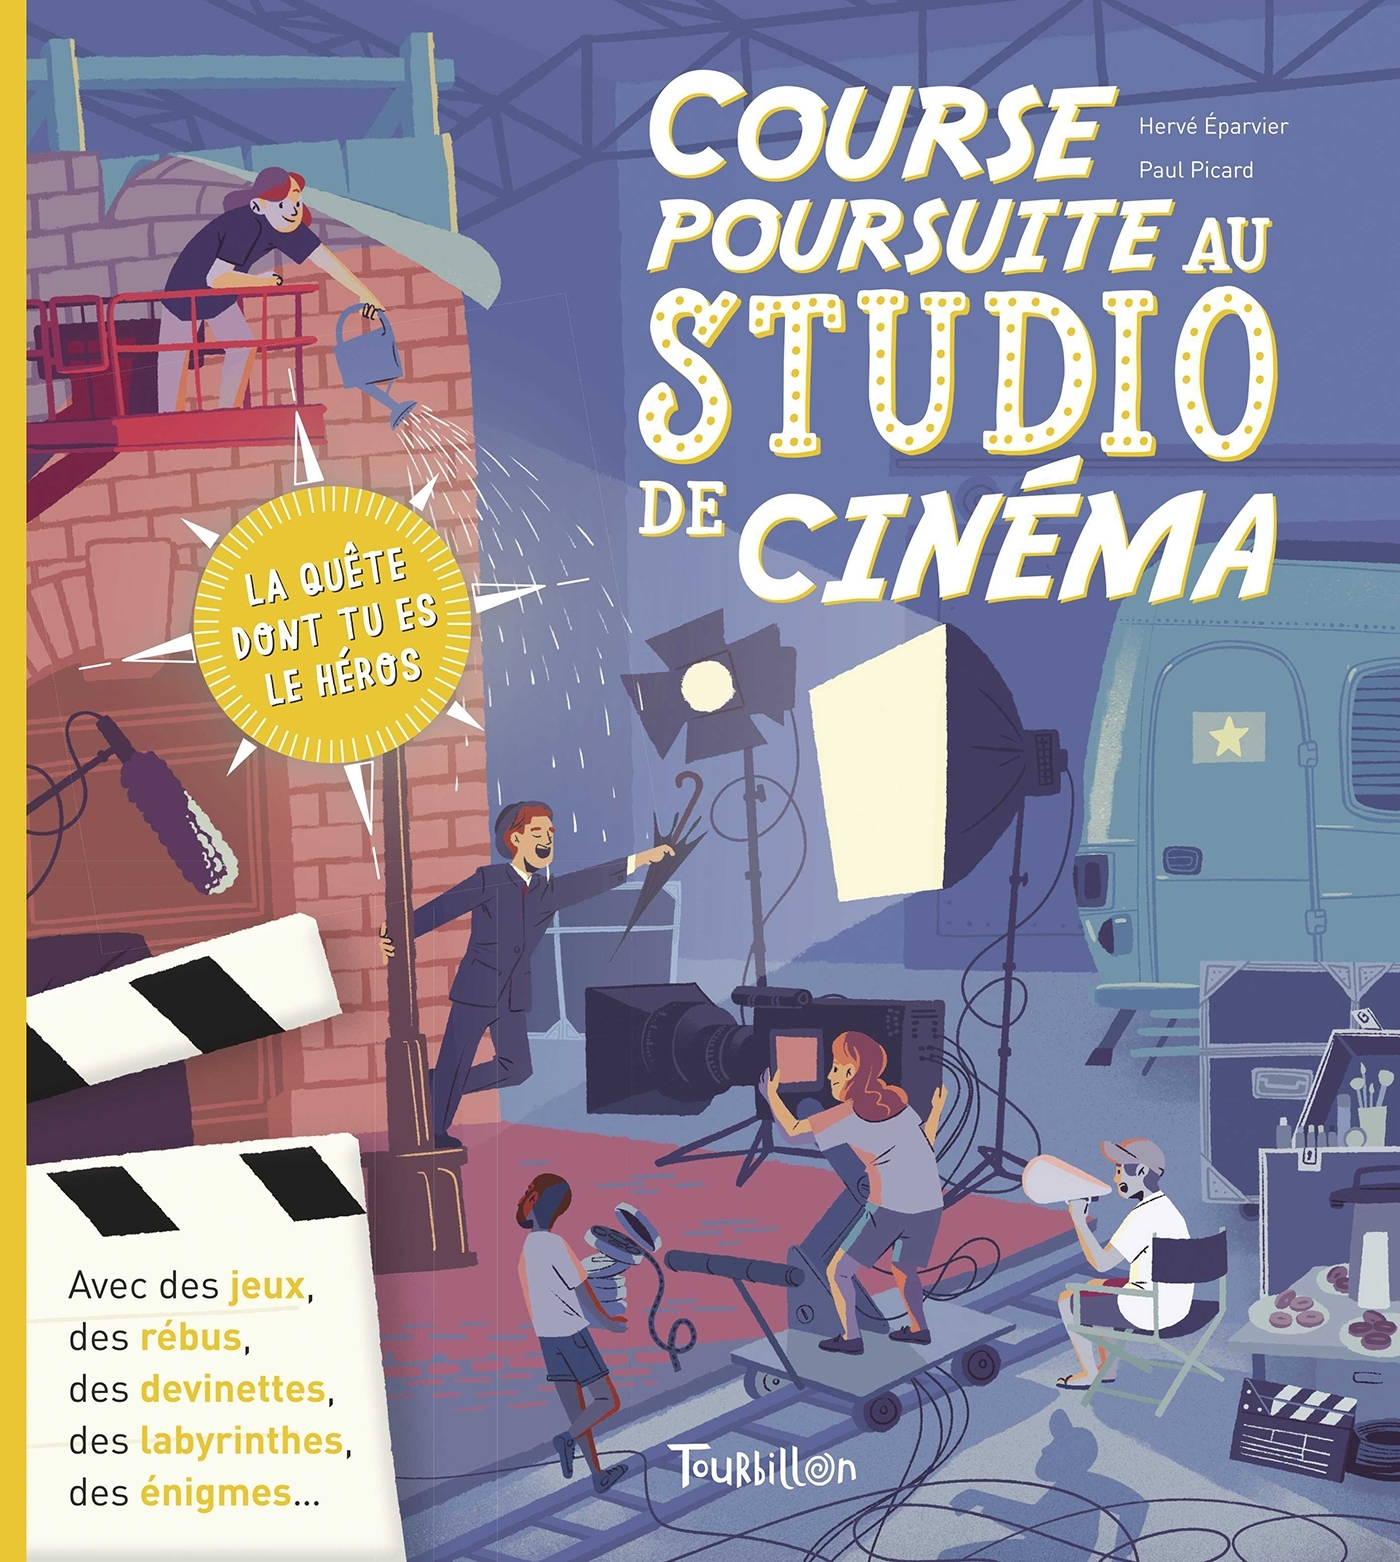 COURSE POURSUITE AU STUDIO DE CINEMA